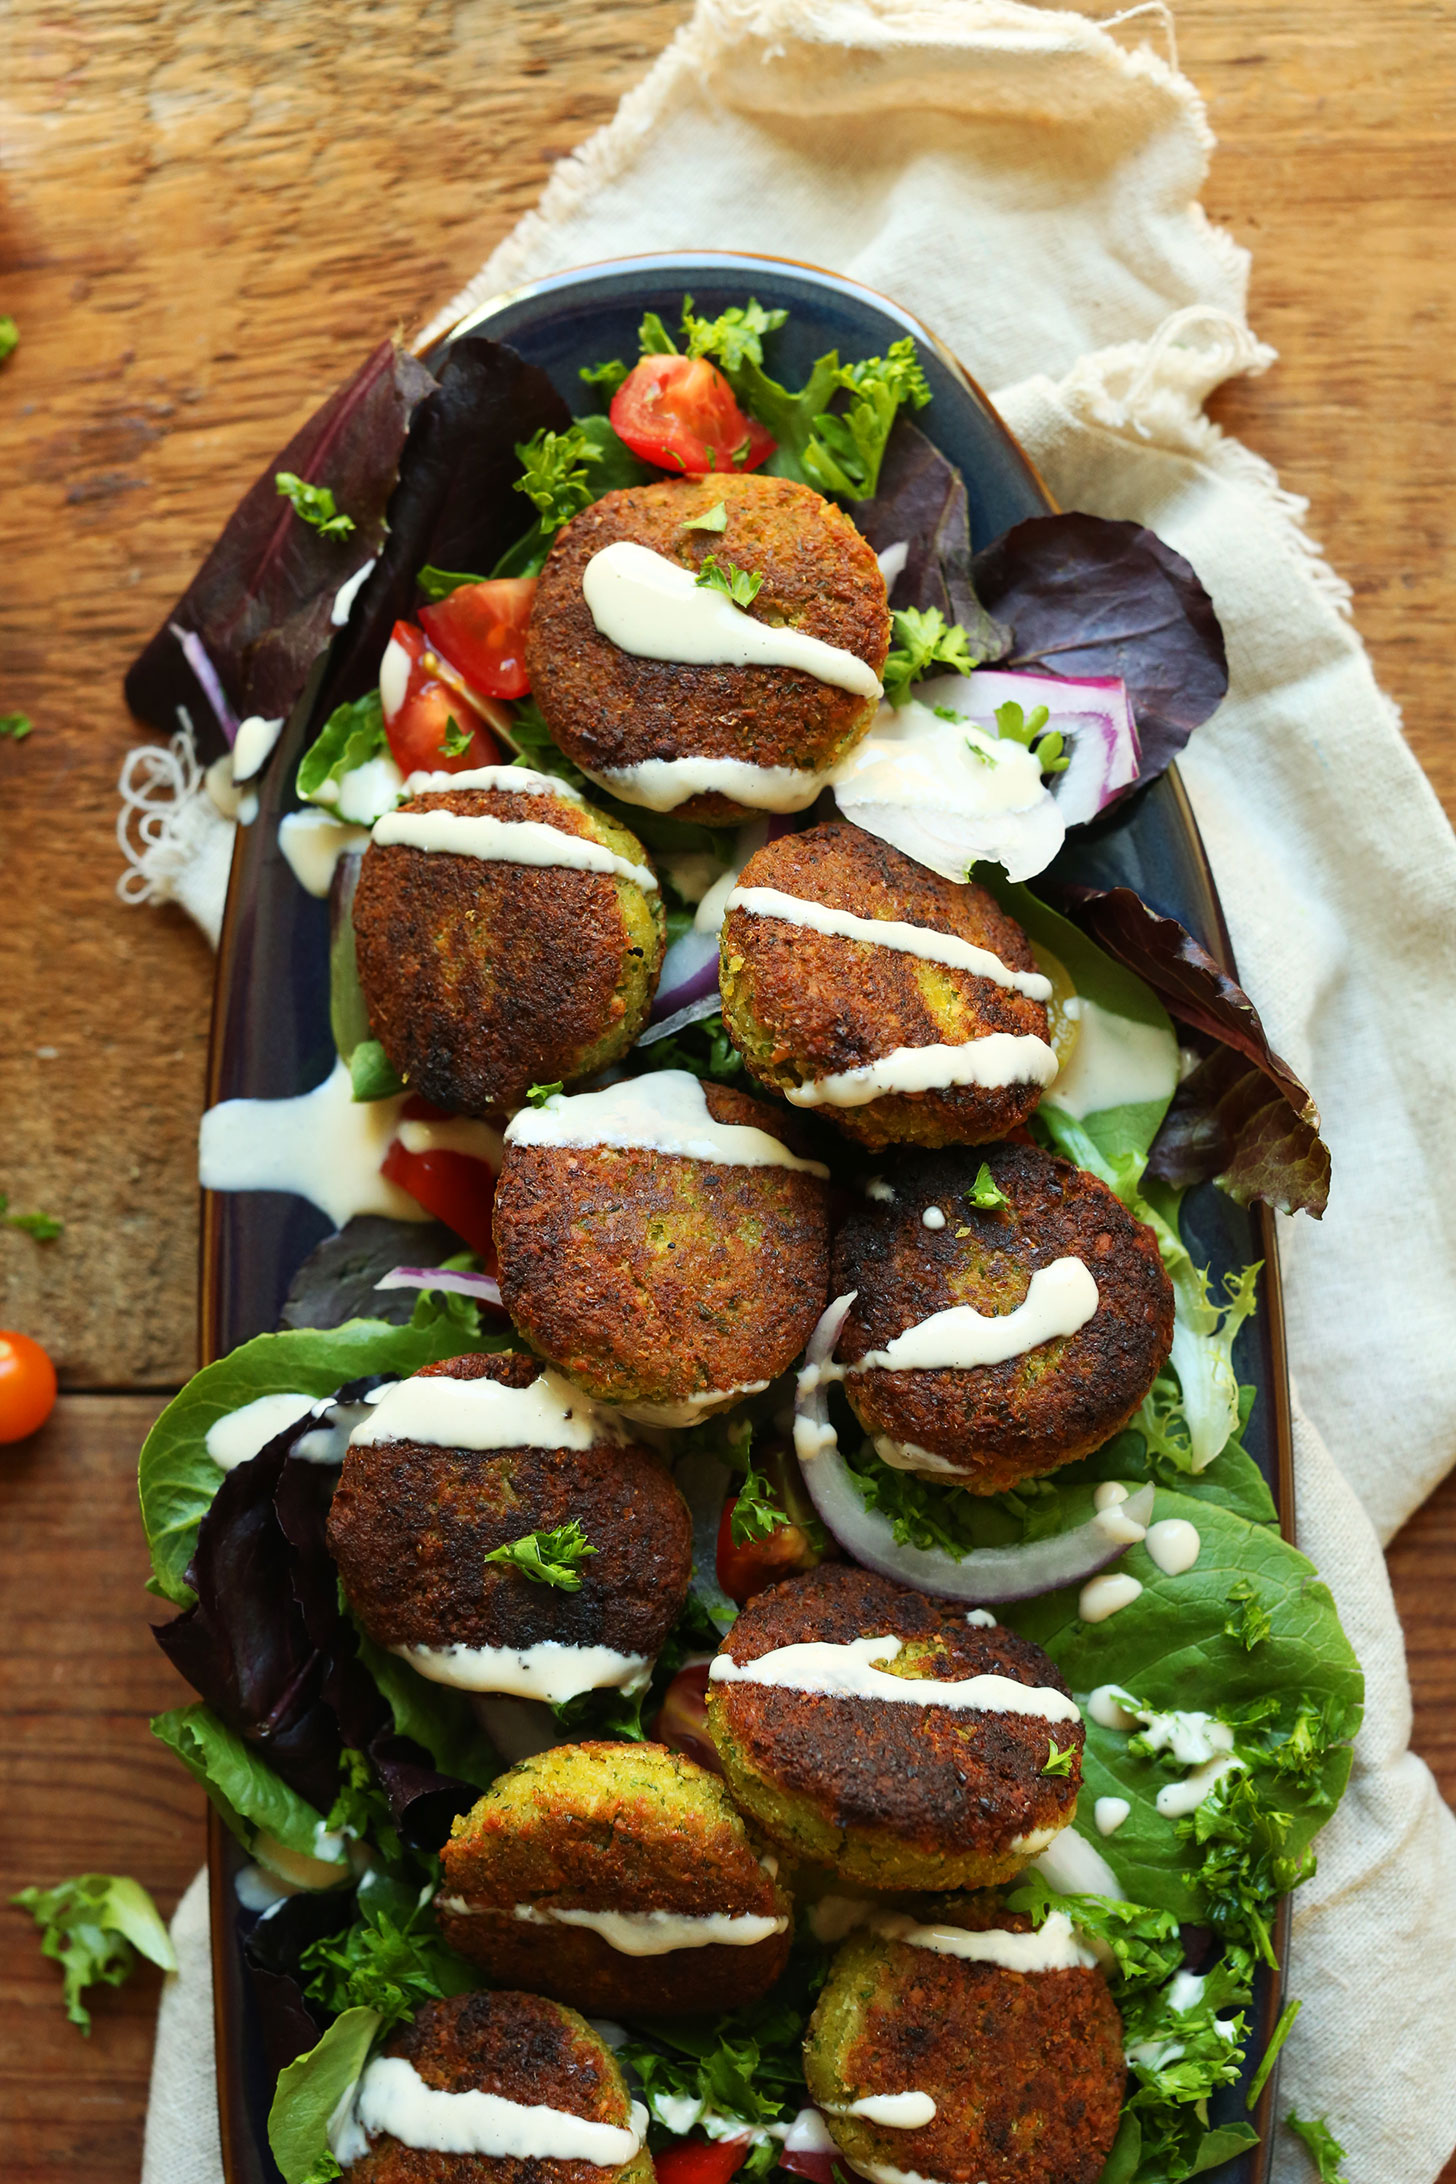 Platter with mixed greens topped with our 10-ingredient Classic Vegan Falafel recipe